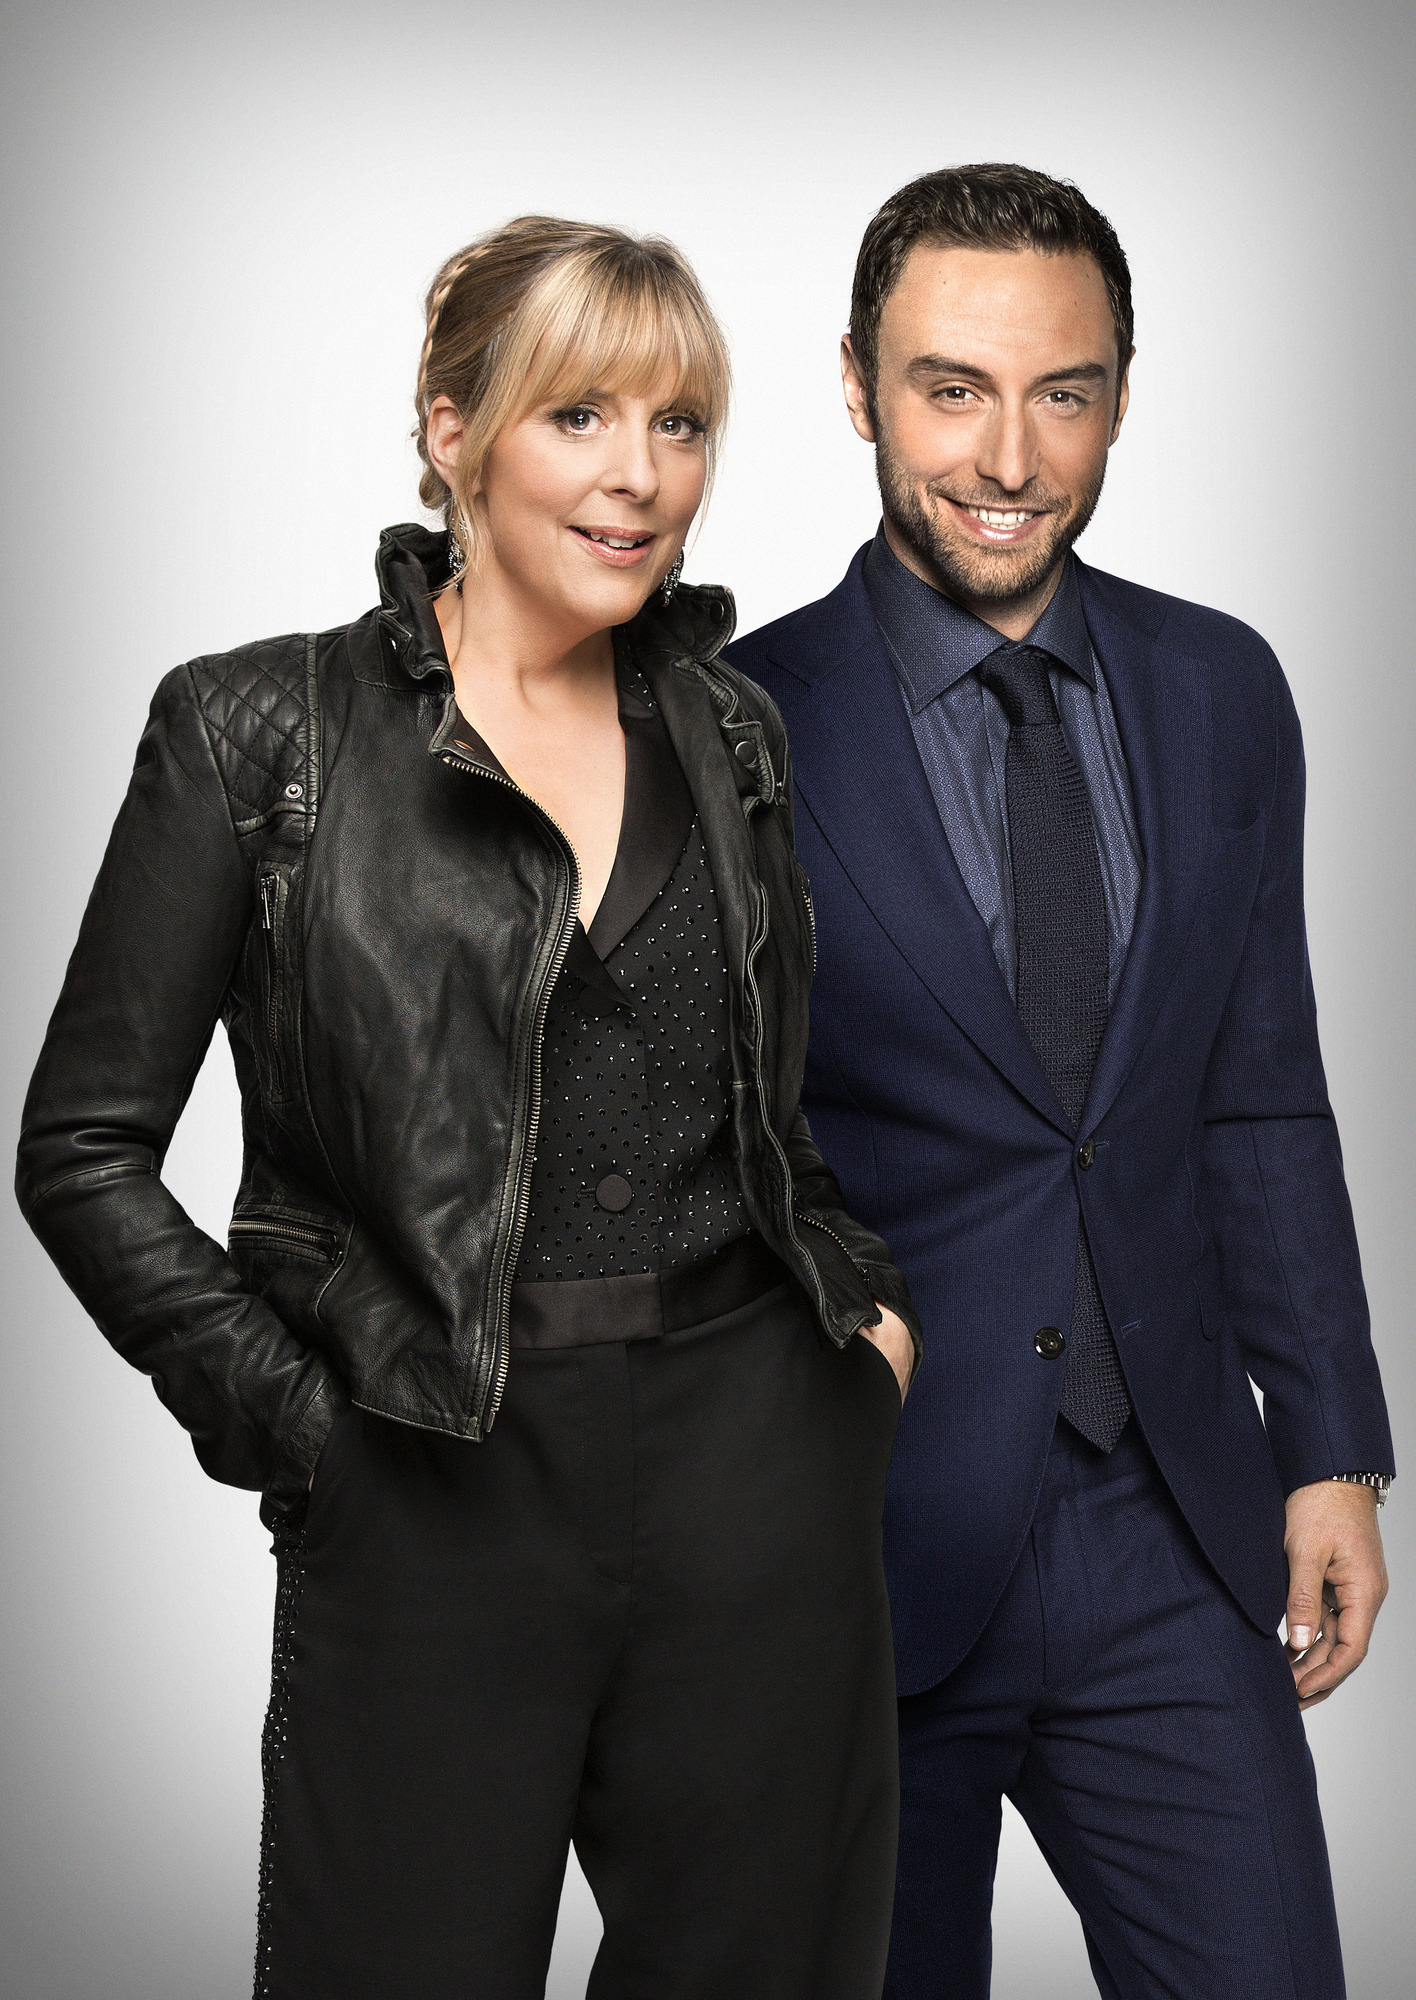 Programme Name: Eurovision: You Decide 2018 - TX: n/a - Episode: Eurovision: You Decide 2018 (No. n/a) - Picture Shows: **EMBARGOED FOR PUBLICATION UNTIL 00:01 HRS ON WEDNESDAY 24TH JANUARY 2018** Mans Zelmerlow, Mel Giedroyc - (C) BBC - Photographer: Guy Levy/Joel Anderson  BBC, TL